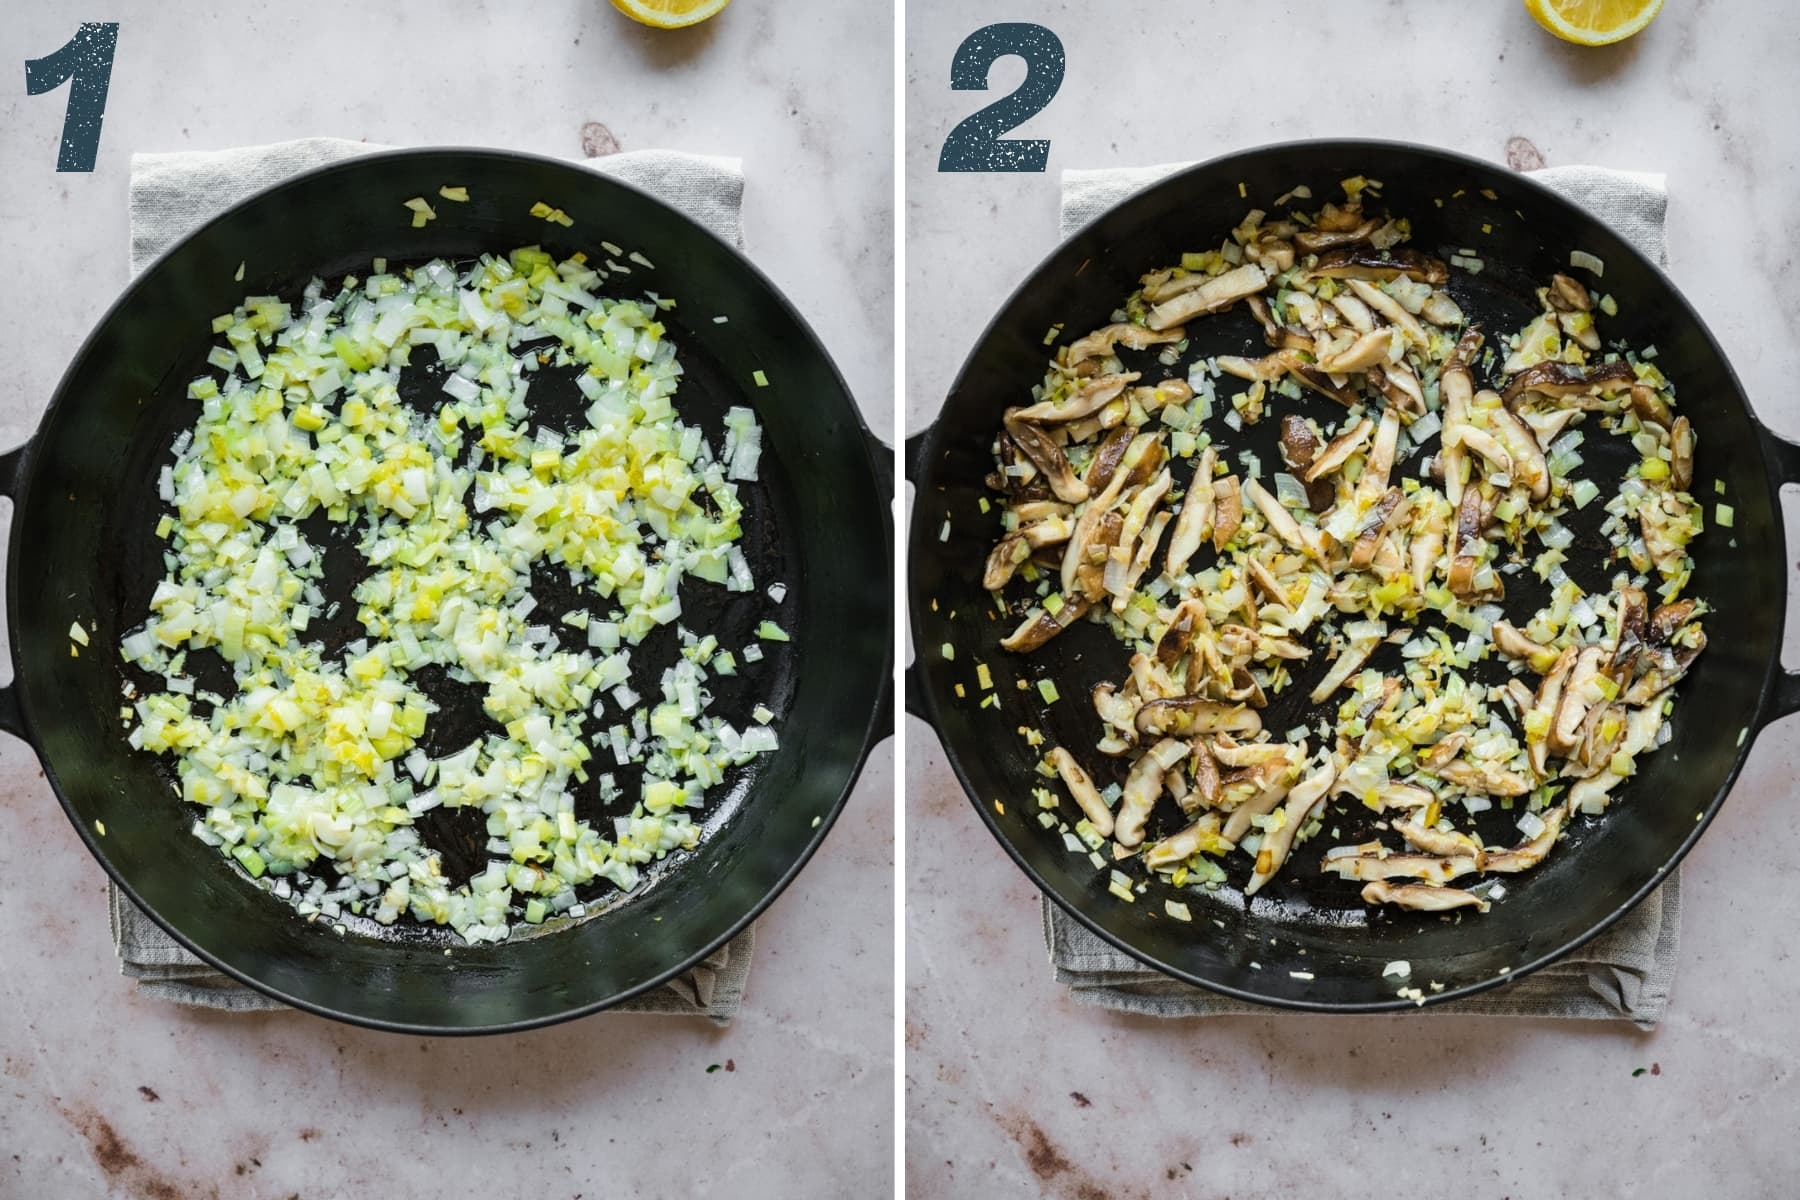 before and after adding mushrooms to sautéed leeks and garlic in a large cast iron skillet.